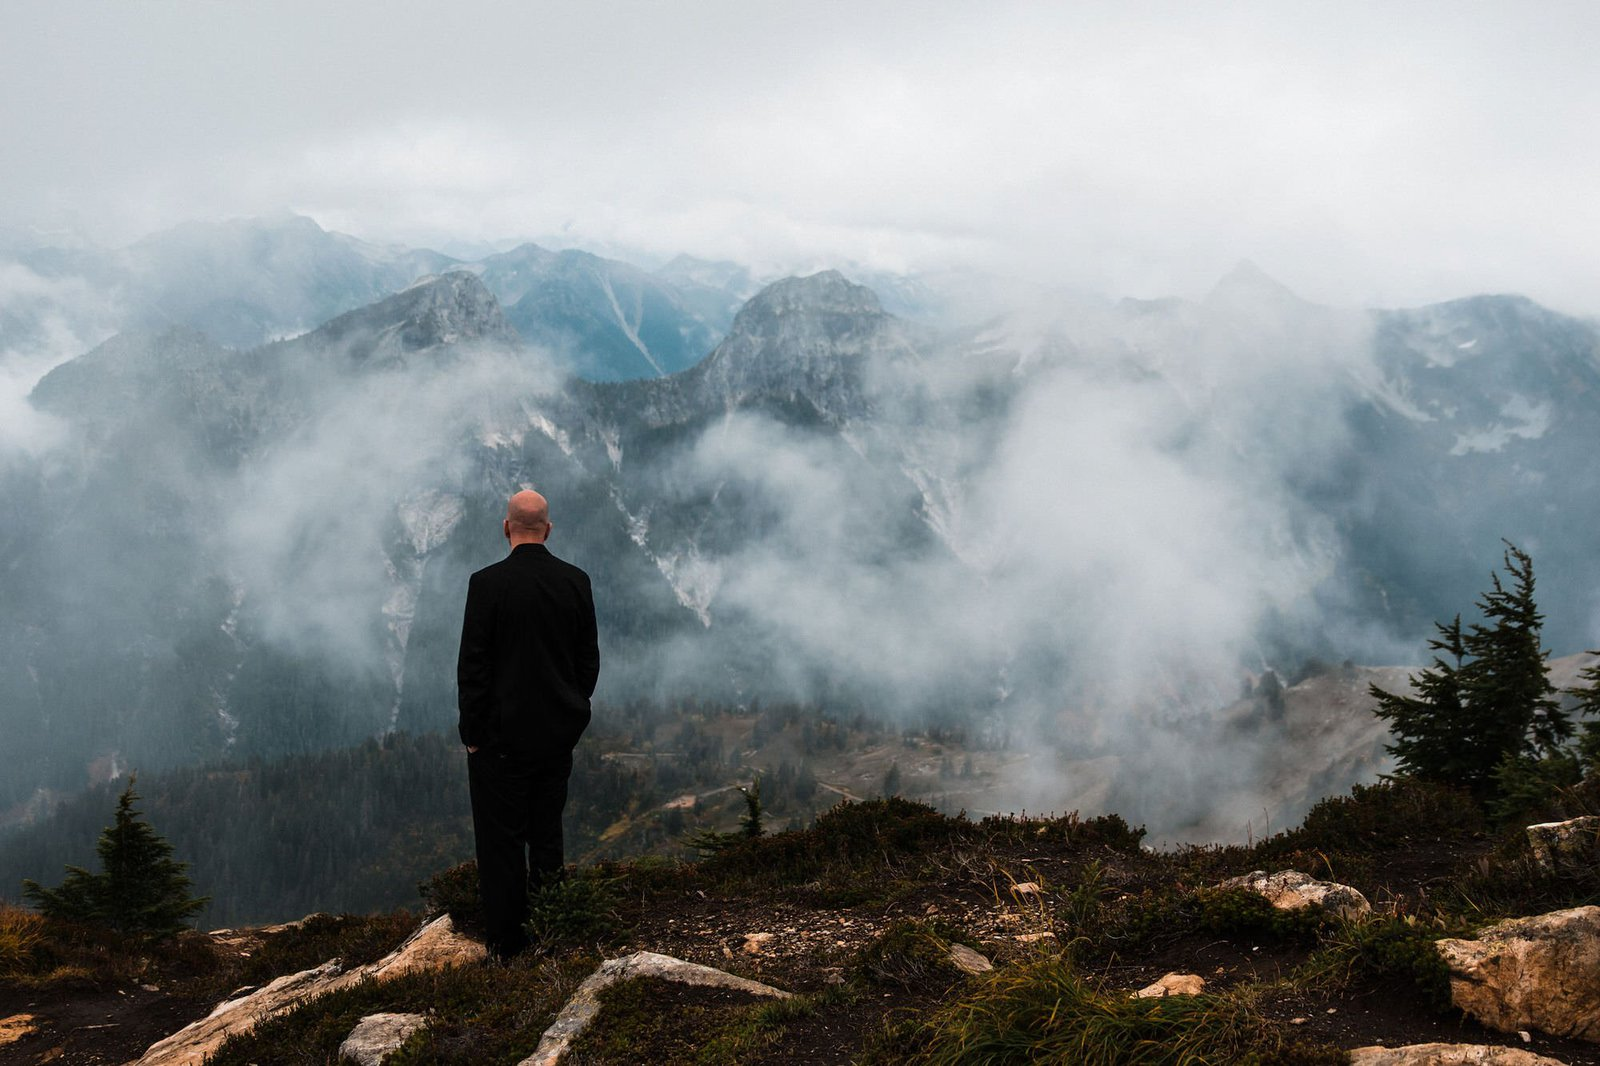 groom awaiting his bride on a mountain.